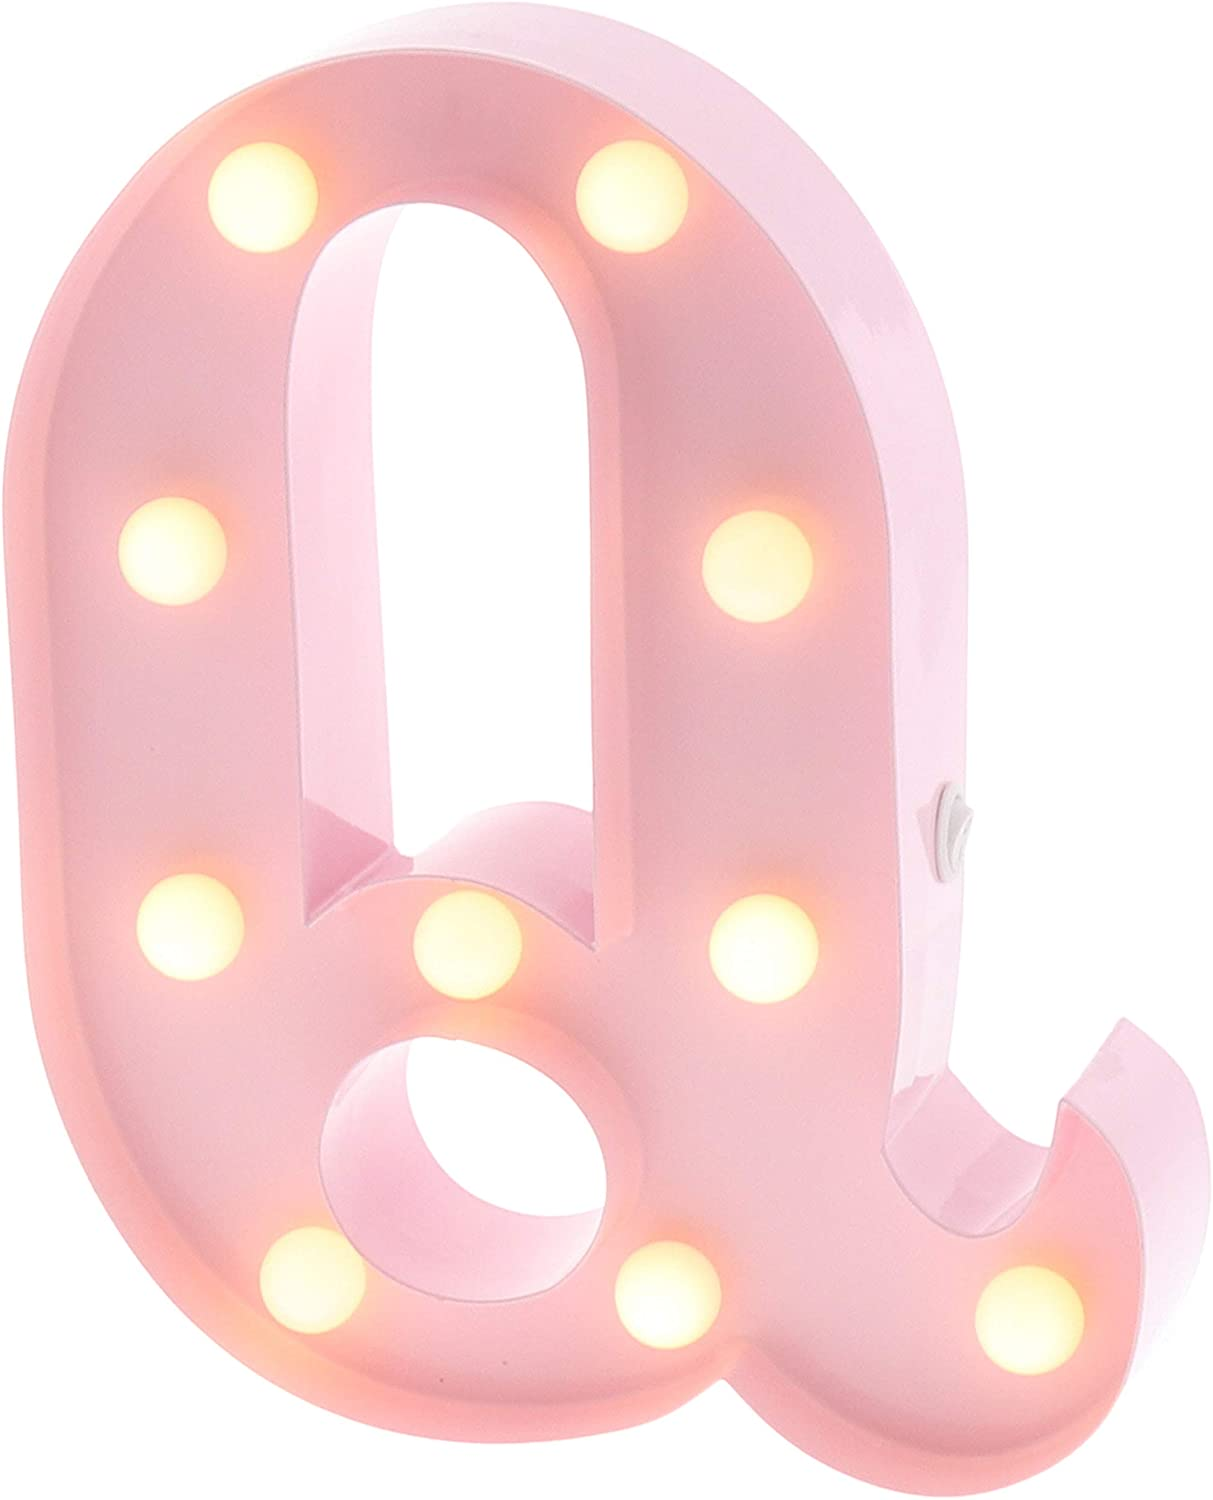 """Barnyard Designs Metal Marquee Letter Q Light Up Wall Initial Nursery Letter, Home and Event Decoration 9"""" (Baby Pink)"""